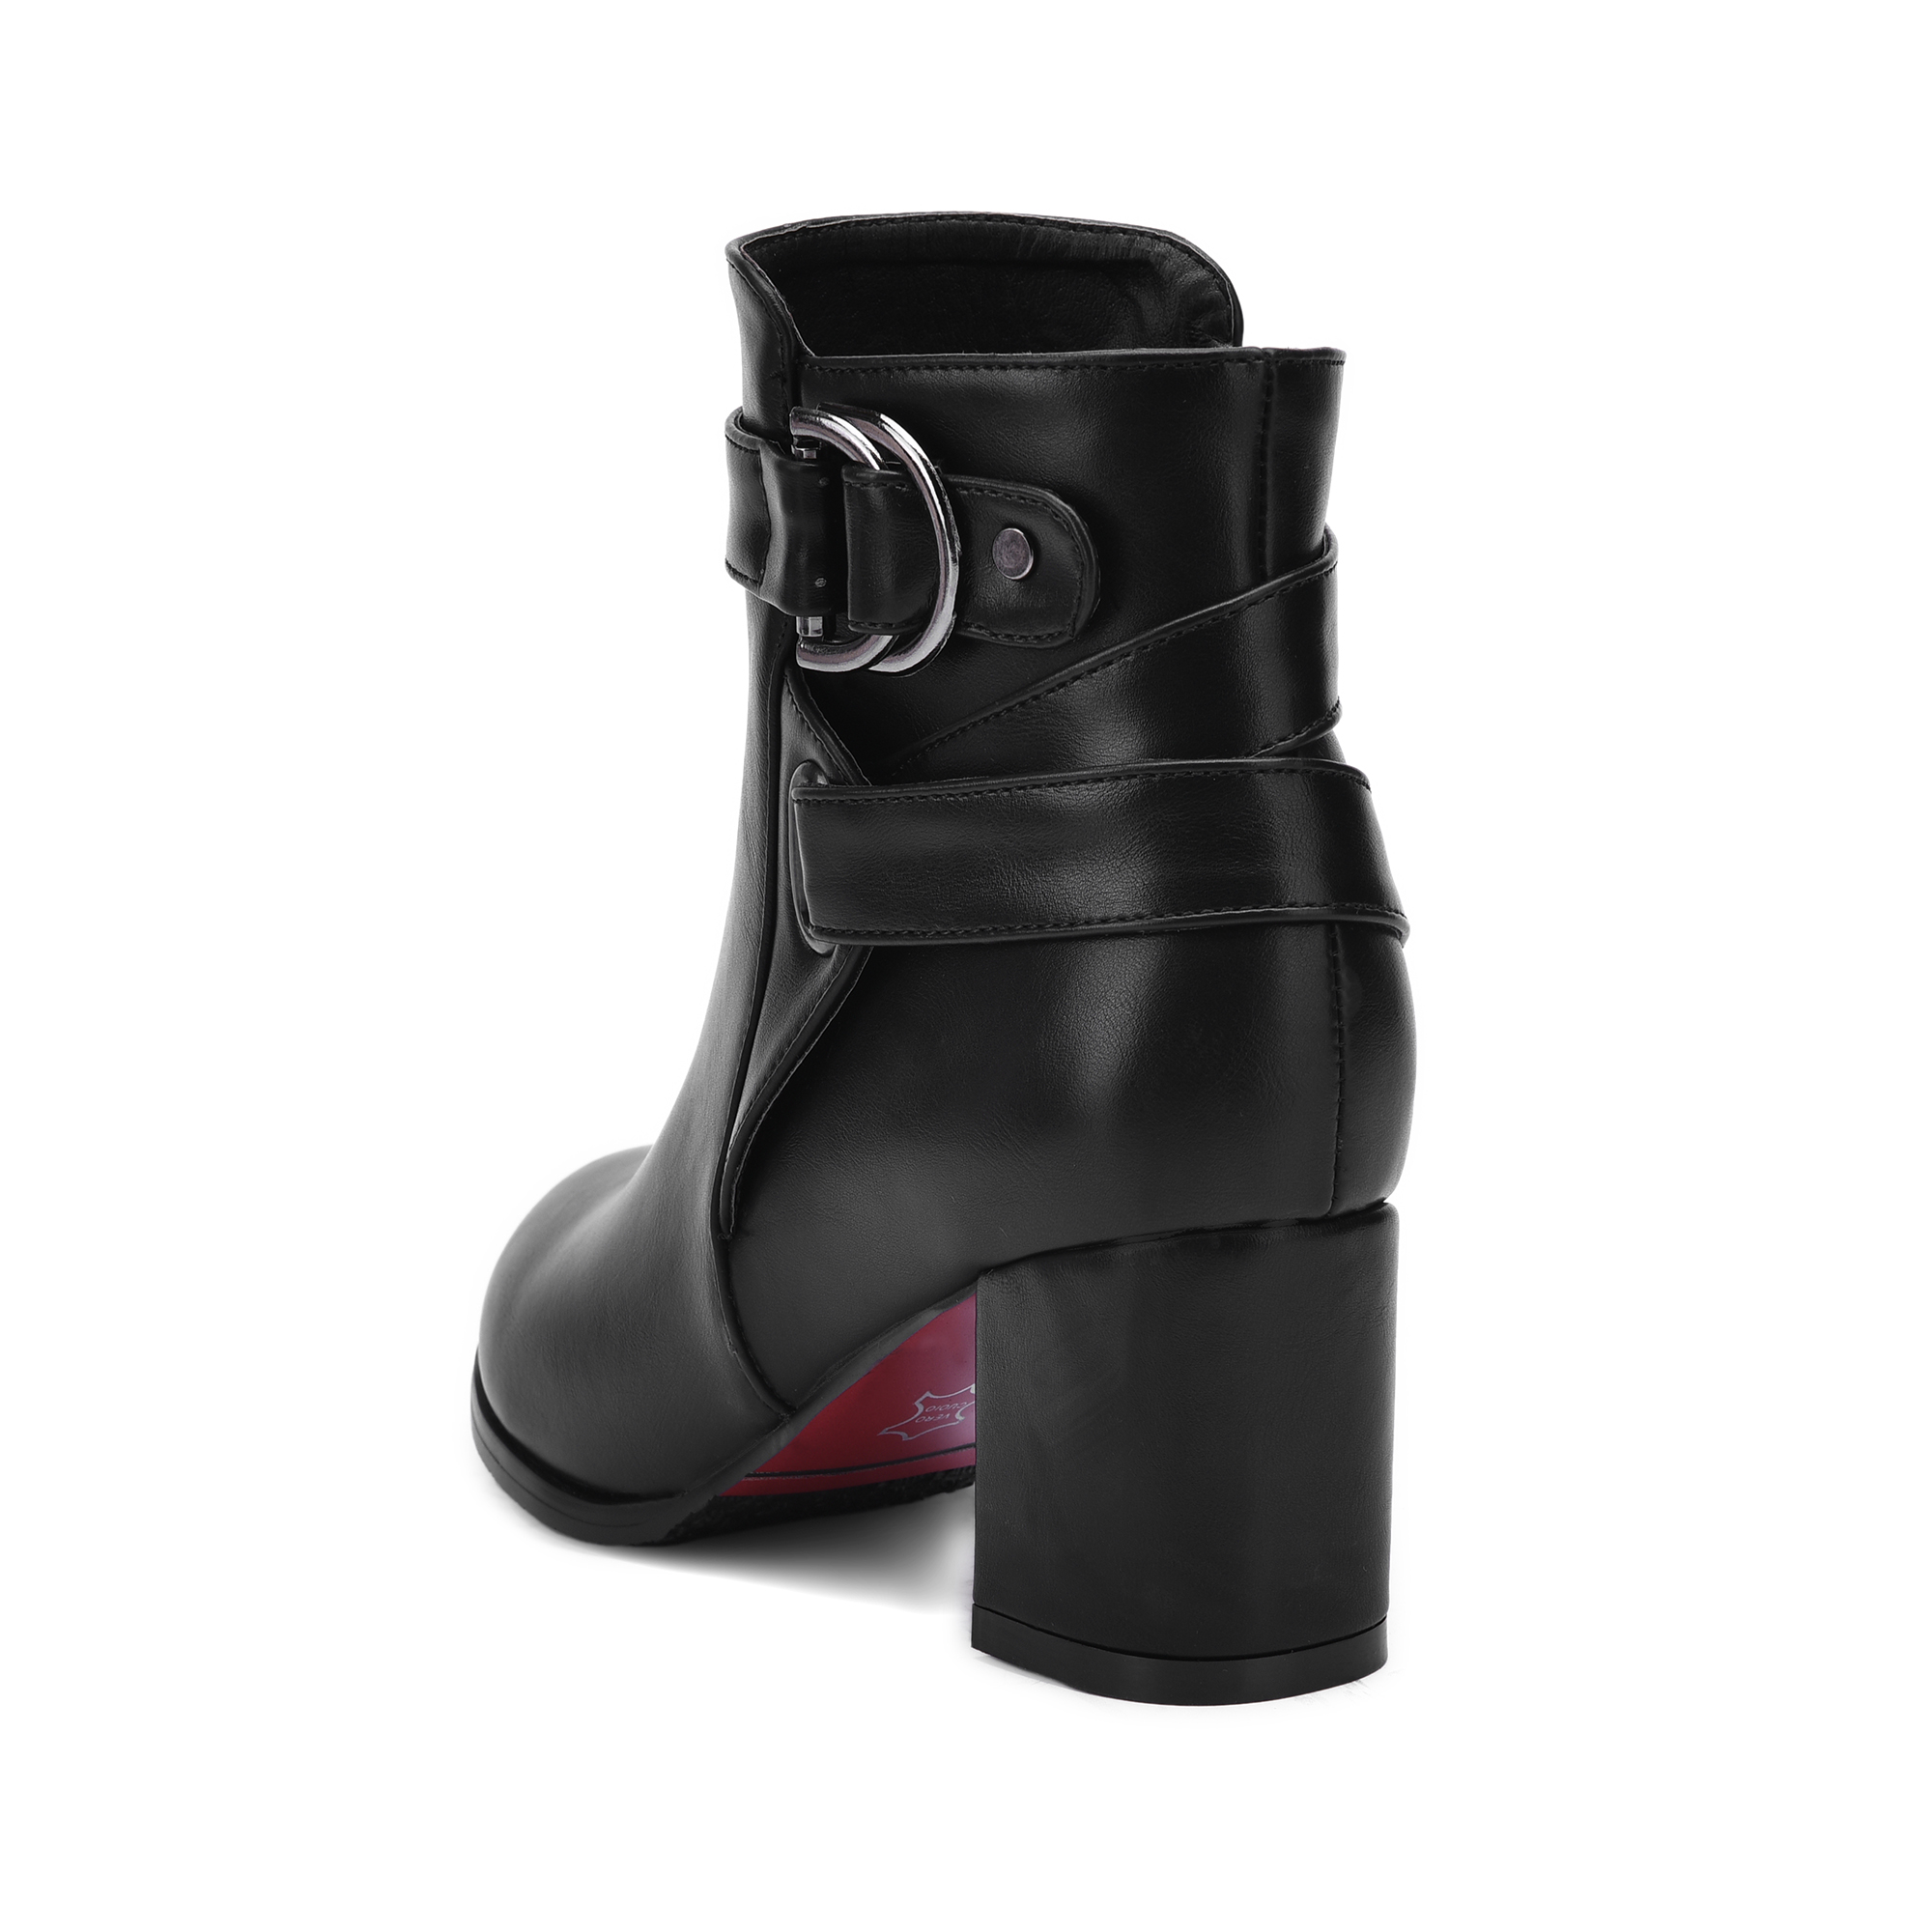 Image 5 - Autumn Women Boots Square High Heel Ankle Boots Fashion Pointed Toe Buckle Winter Zipper Boots Female Shoes Black White Beige-in Ankle Boots from Shoes